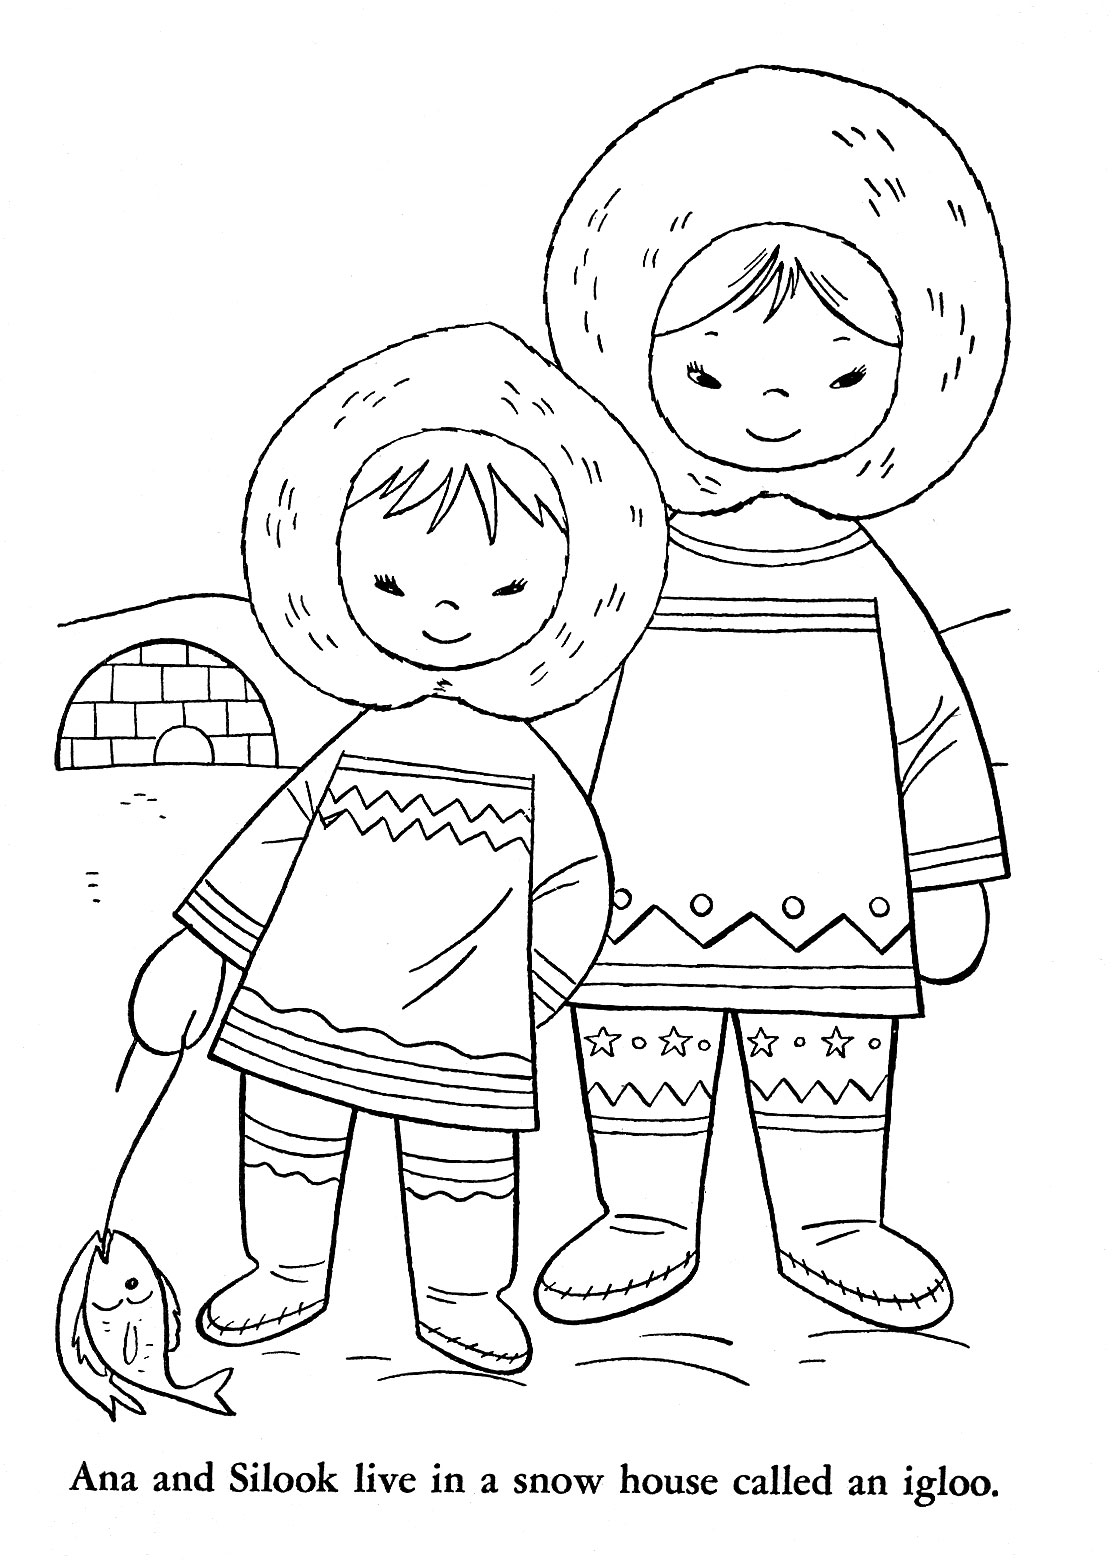 alaska coloring book pages - photo#38